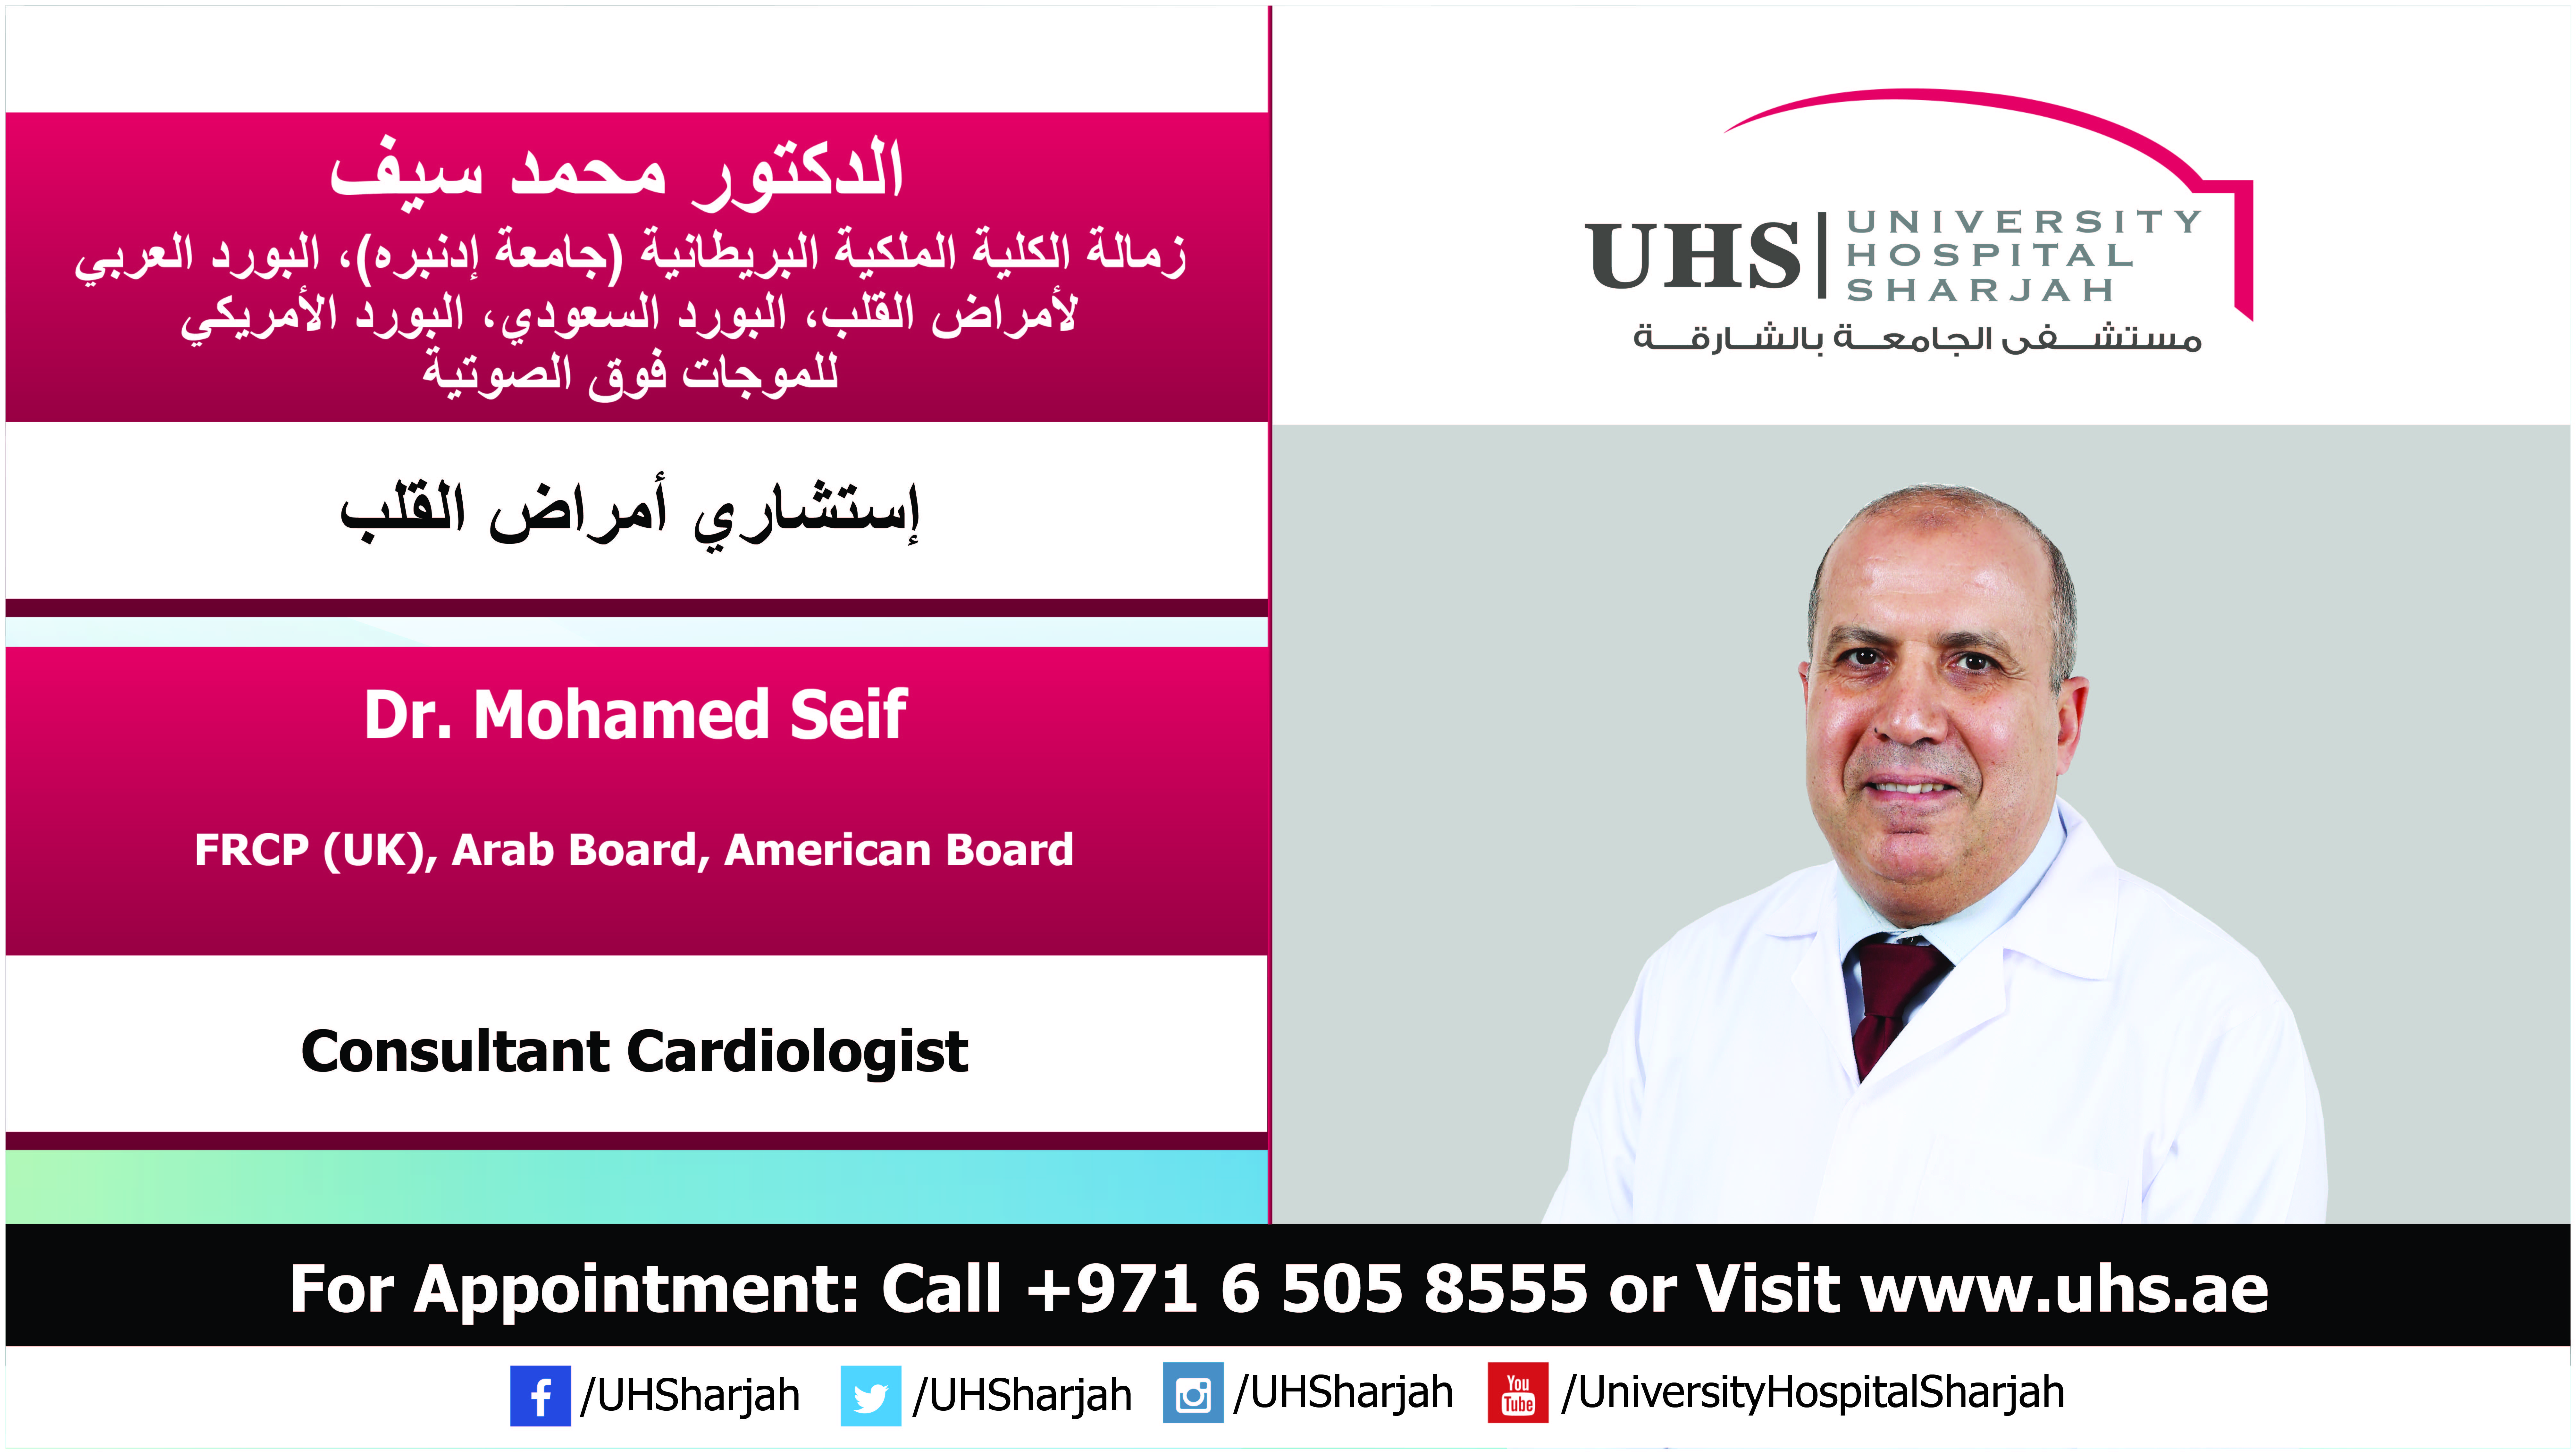 Dr Mohammed is a Consultant Cardiologist, FRCP (UK